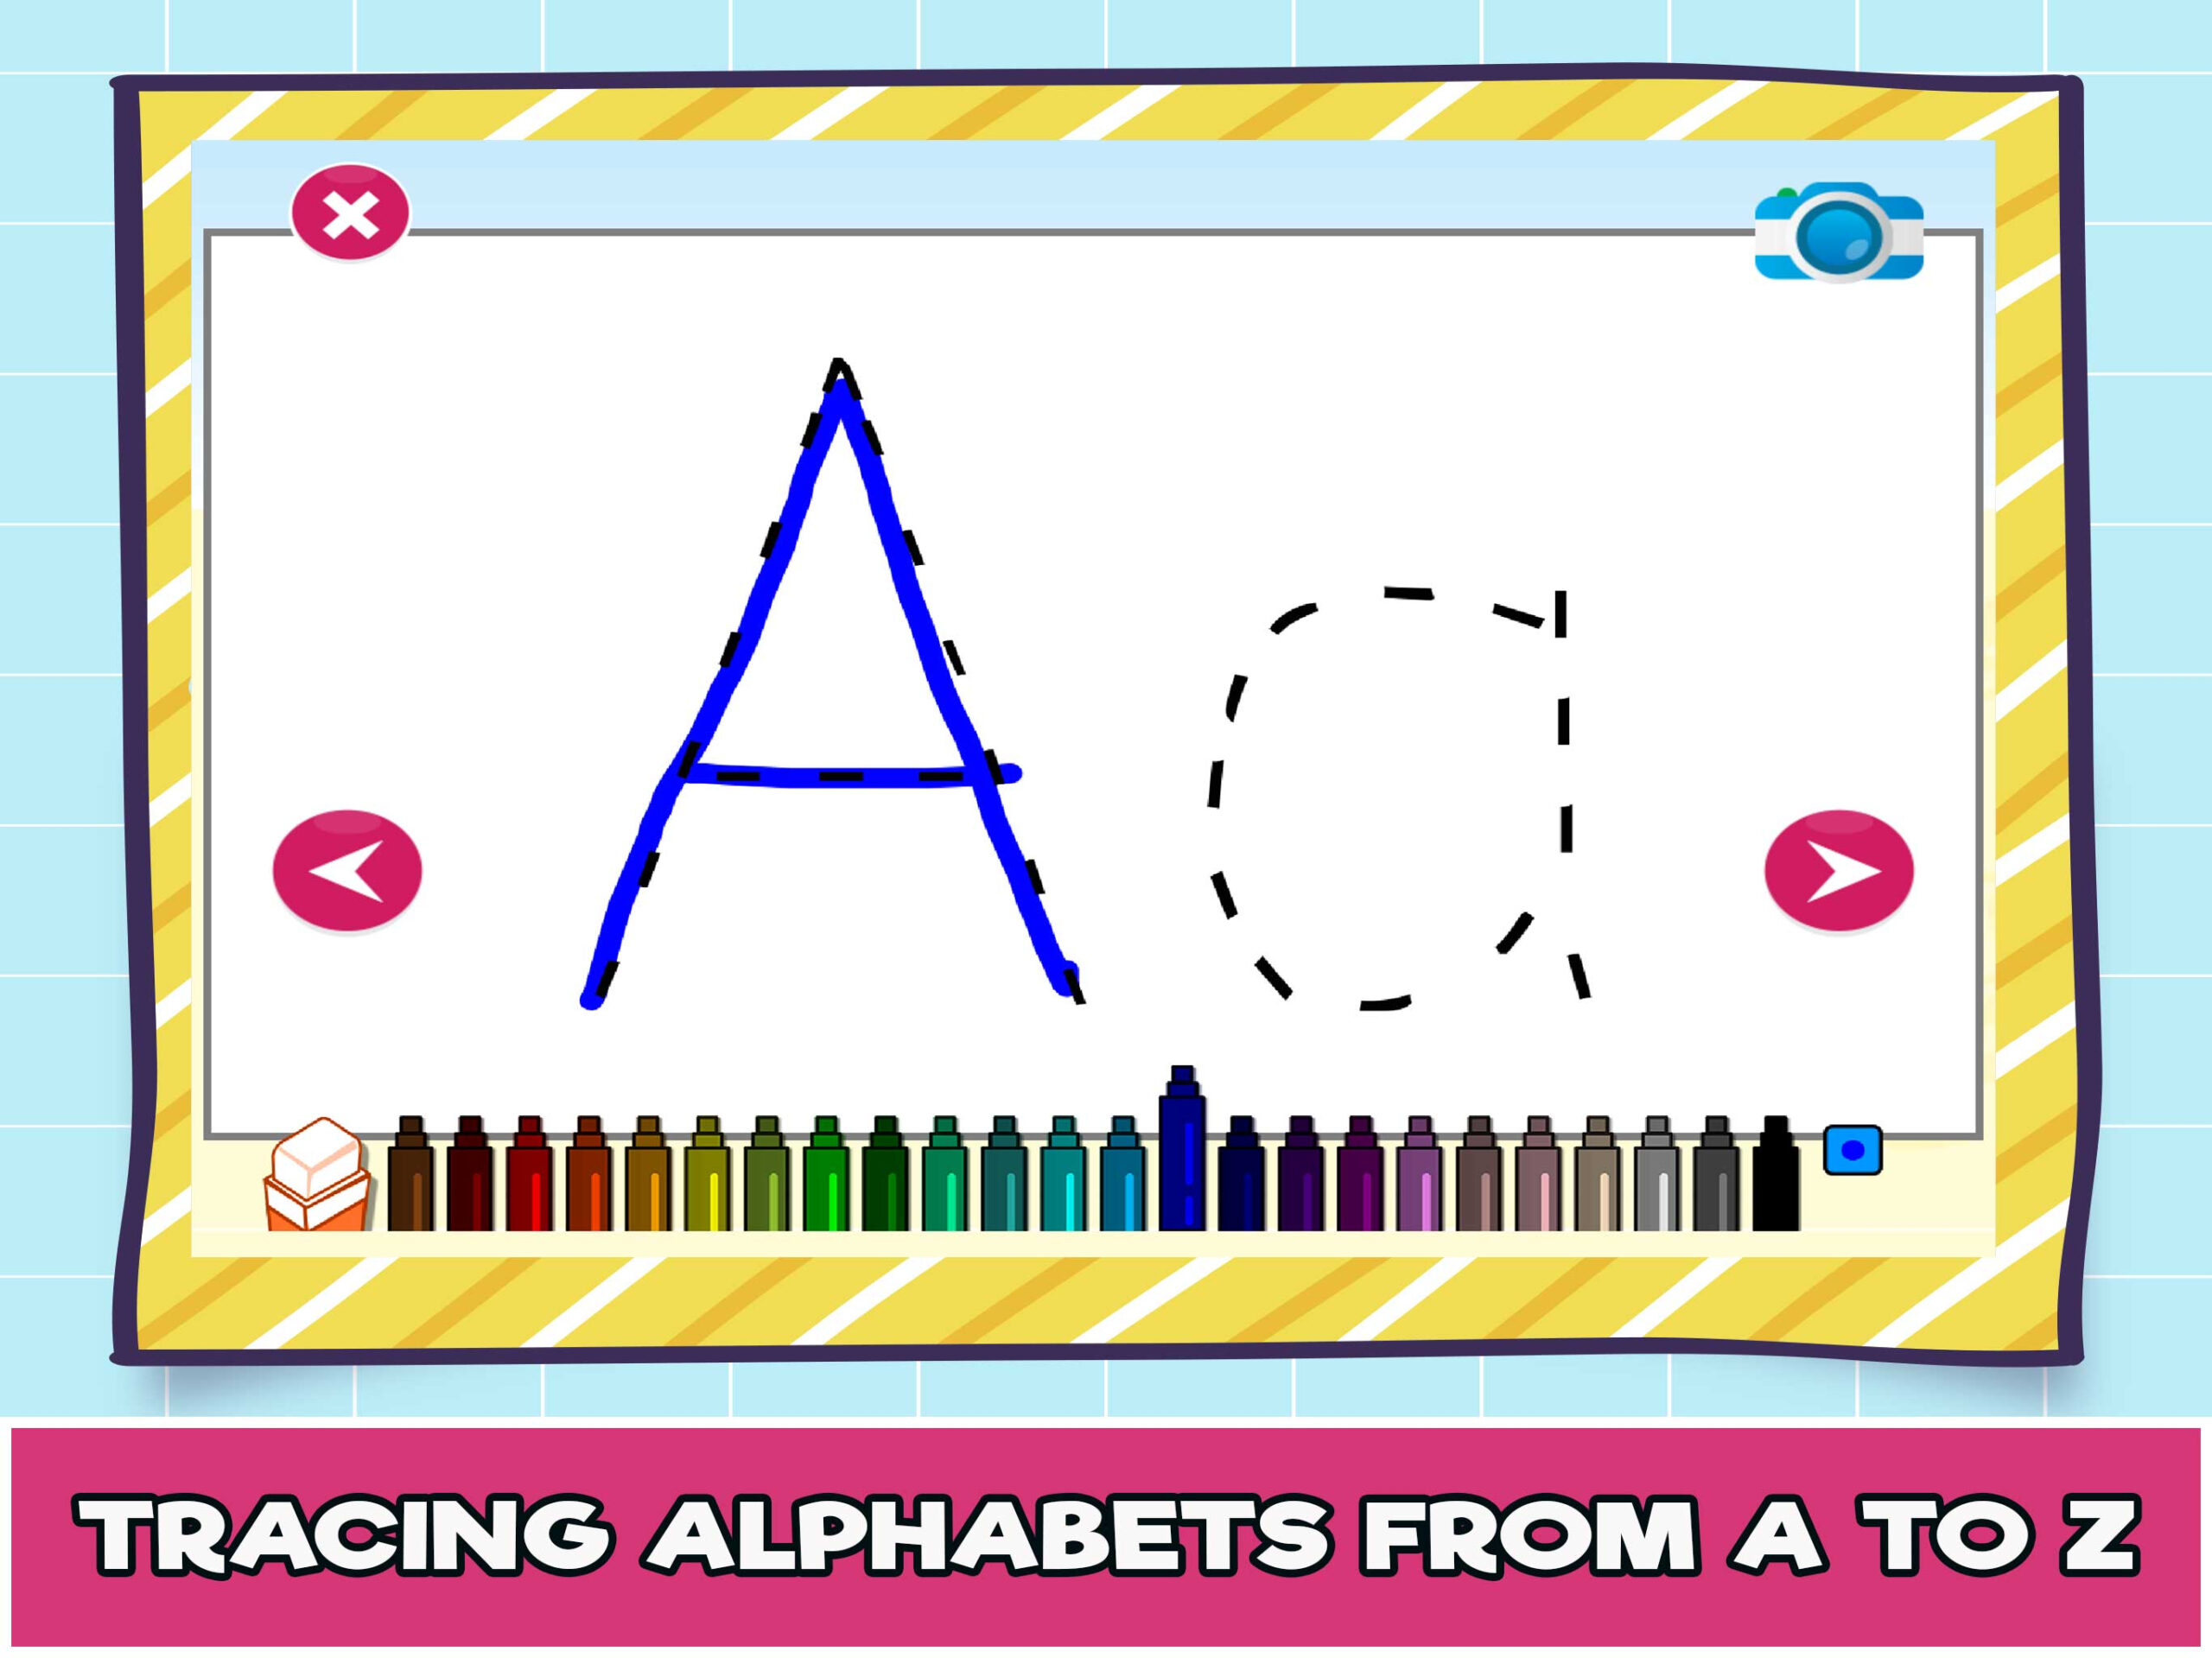 Free Online Alphabet Tracing Game For Kids - The Learning Apps with Letter Tracing Games